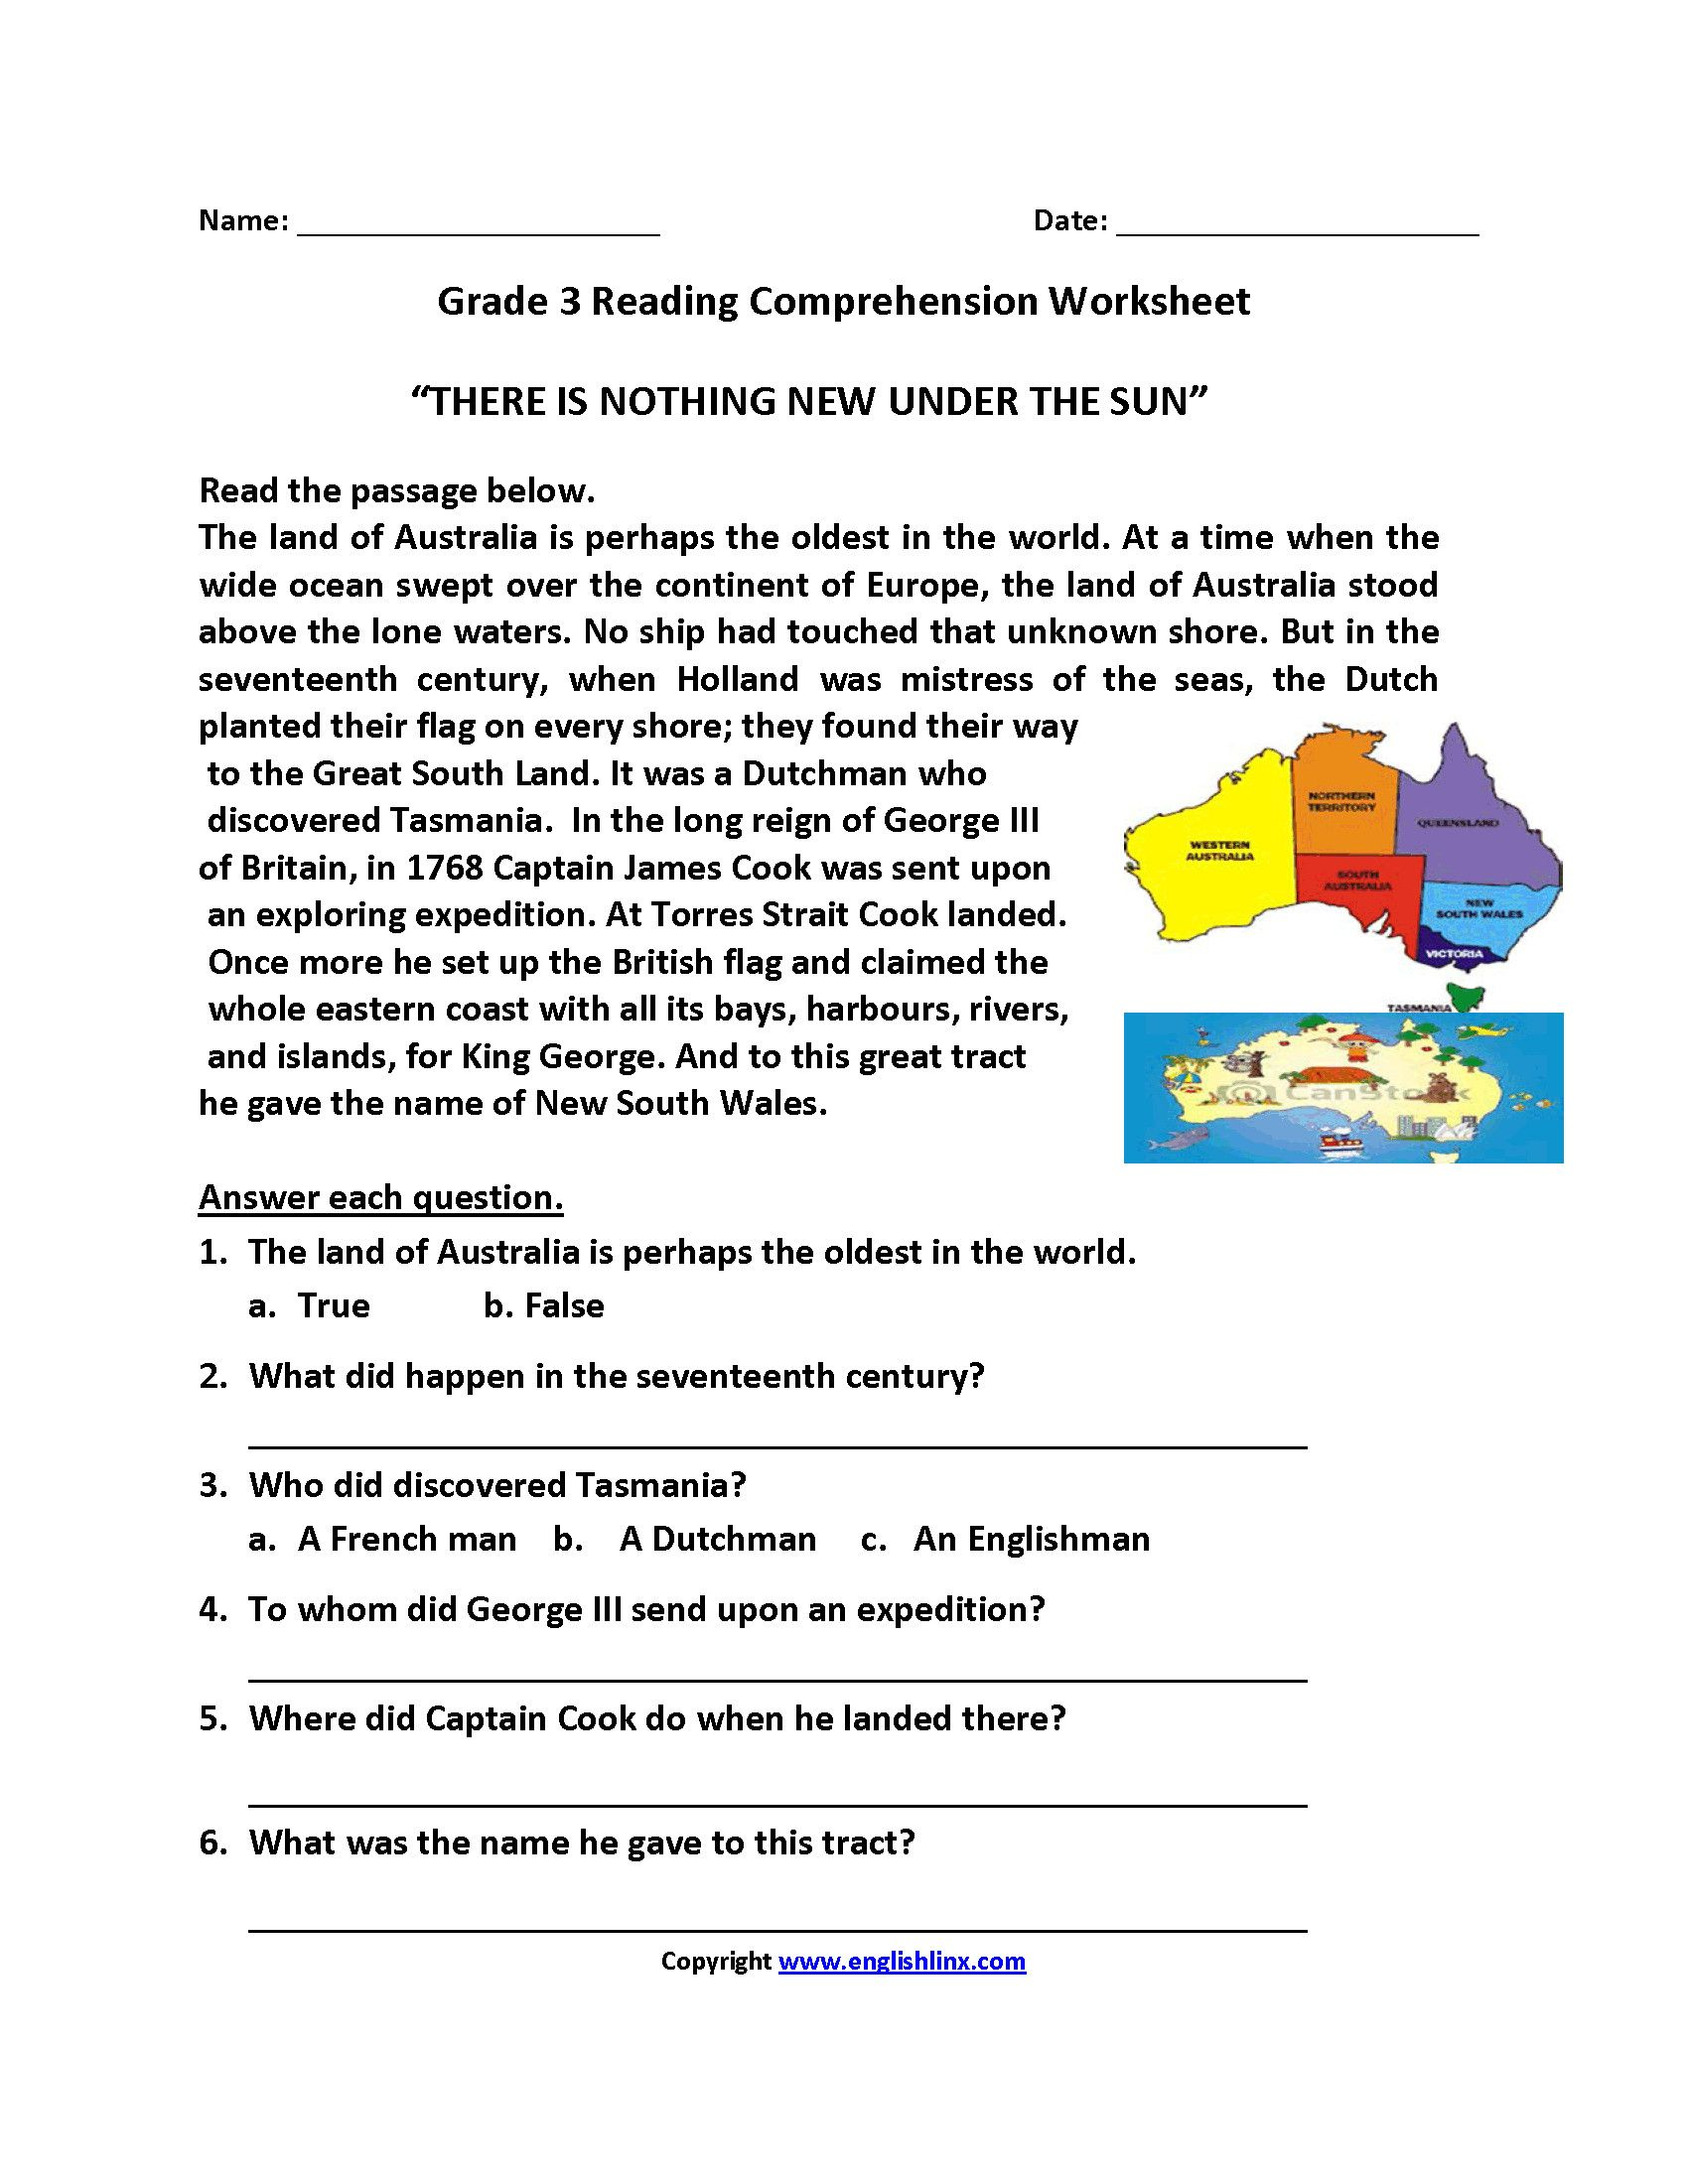 - 38 Innovative Reading Comprehension Worksheets Design Ideas (With